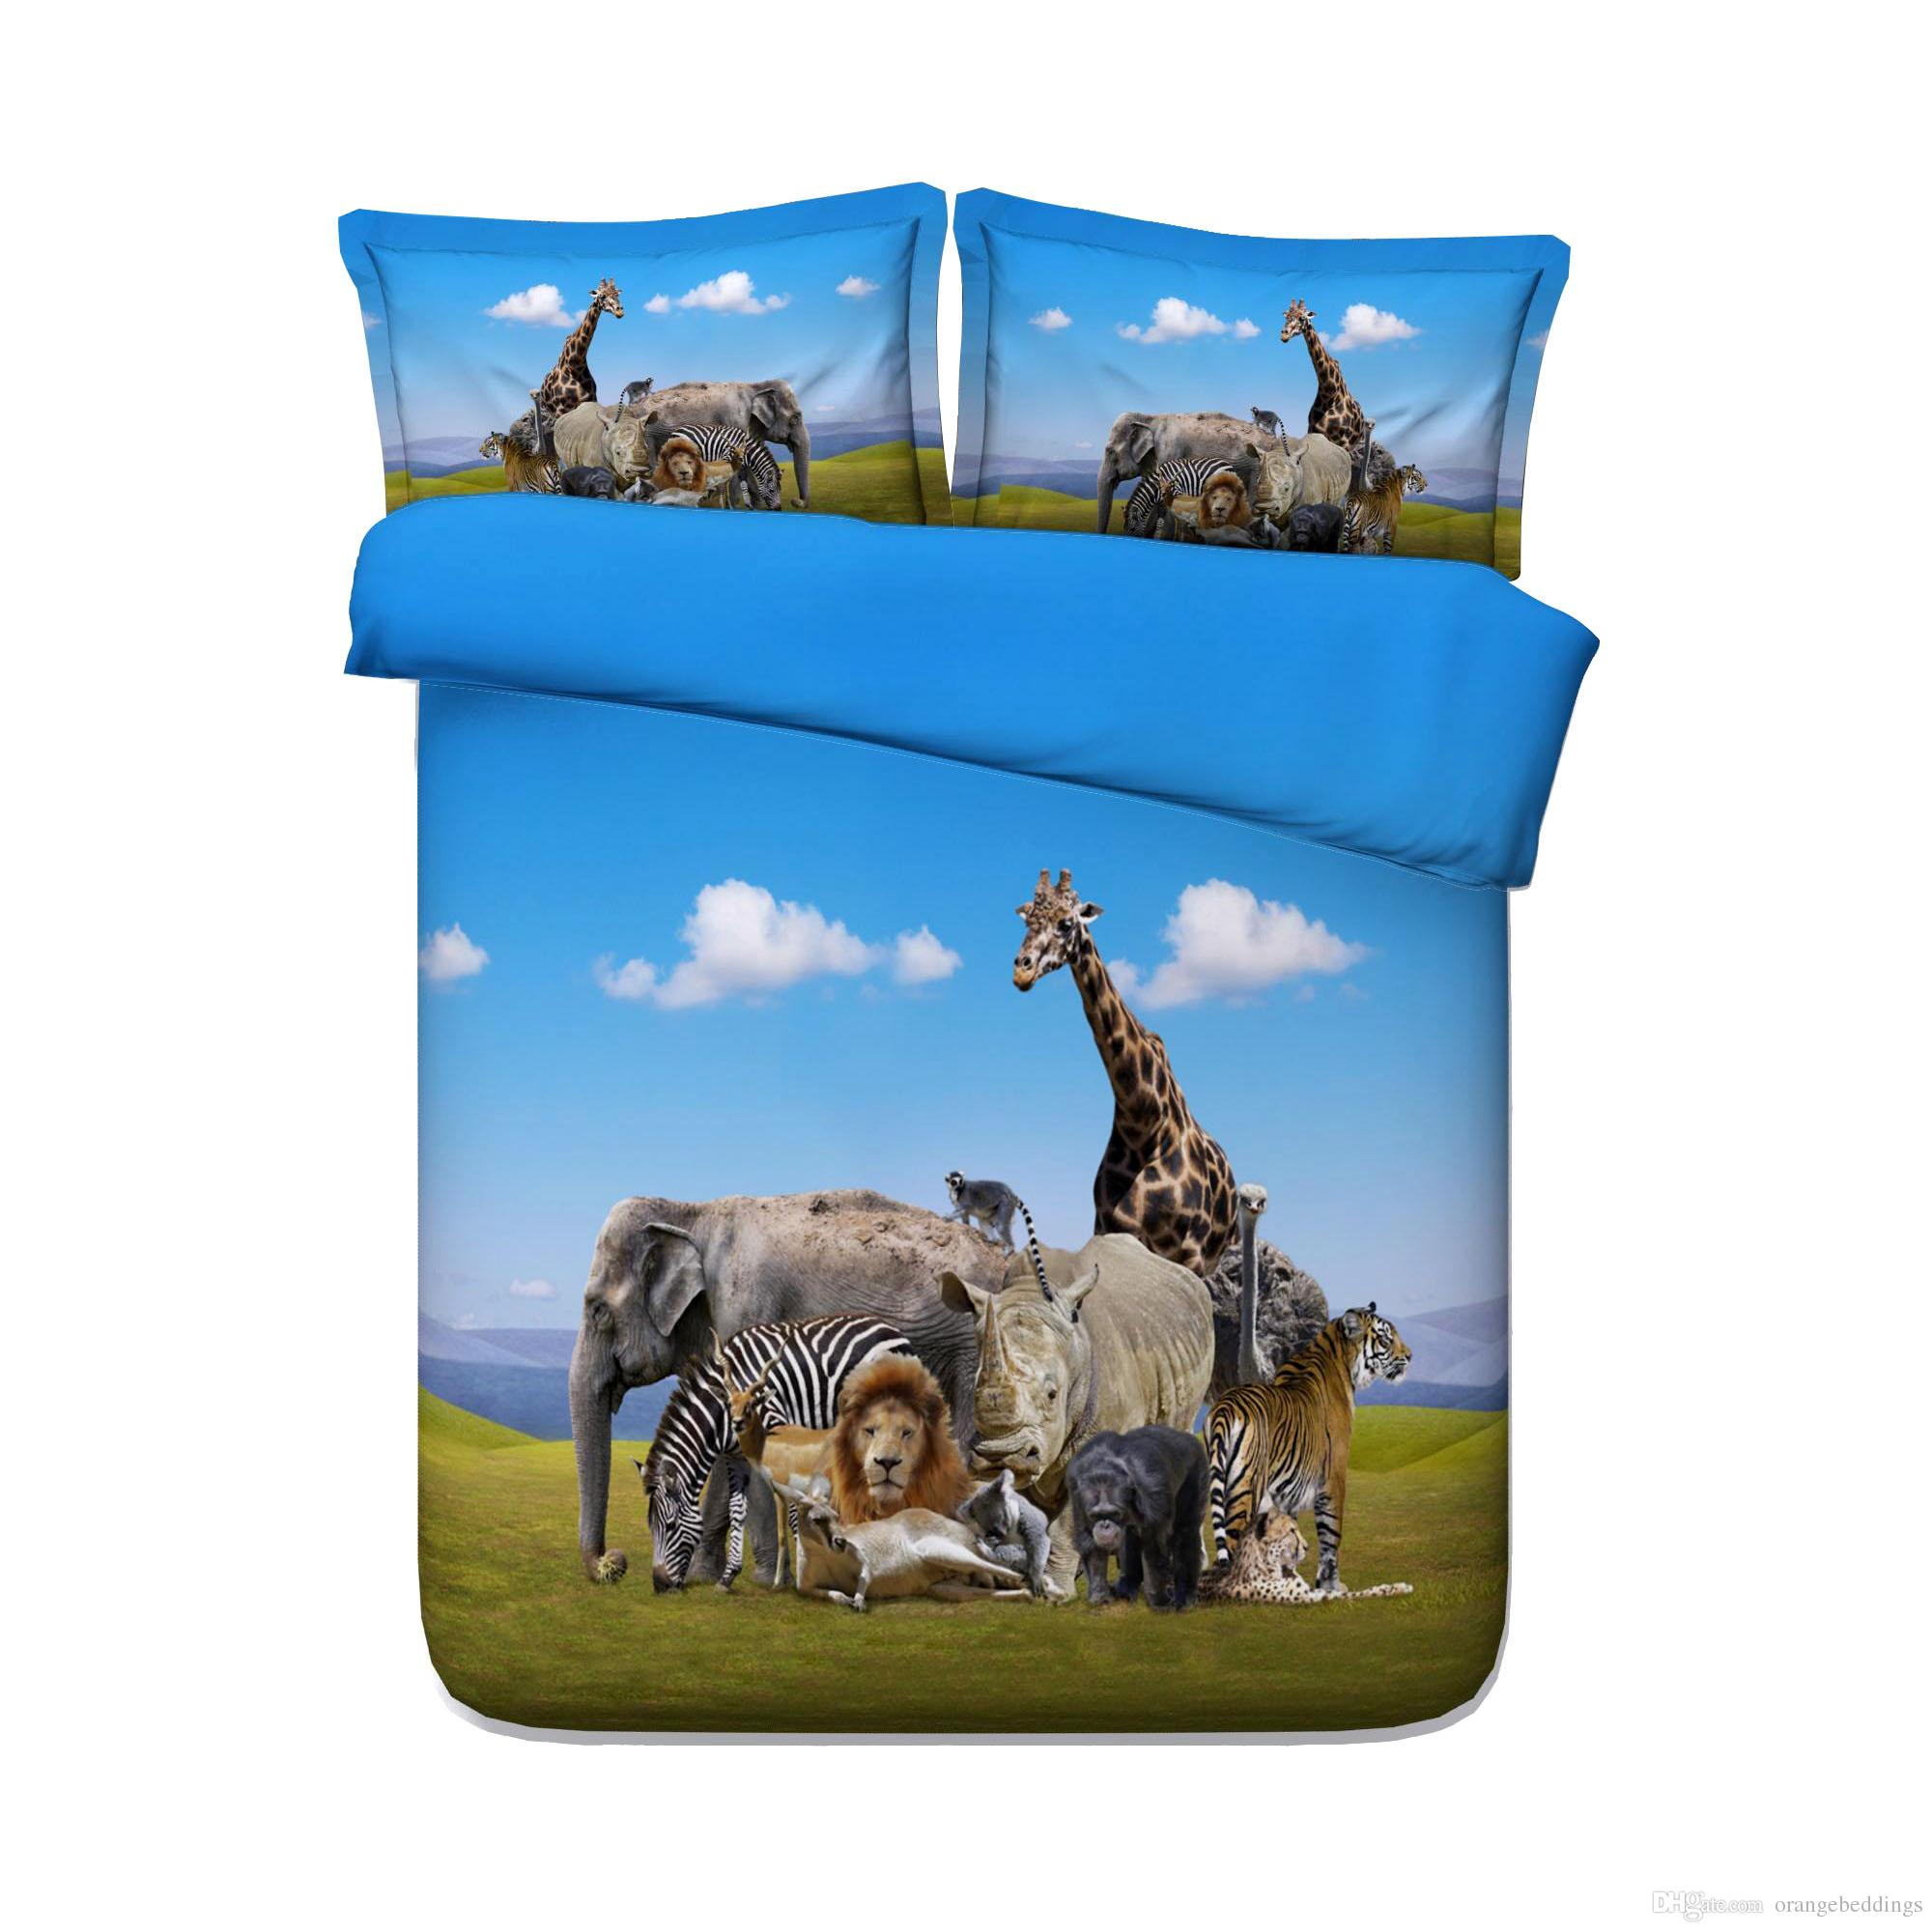 Animal Zoo Kids Boys Duvet Cover Set Giraffes Girls 3 Piece Bedding Set With 2 Pillow Shams Animal Bear Zebra Elephant Duck Tiger Lion